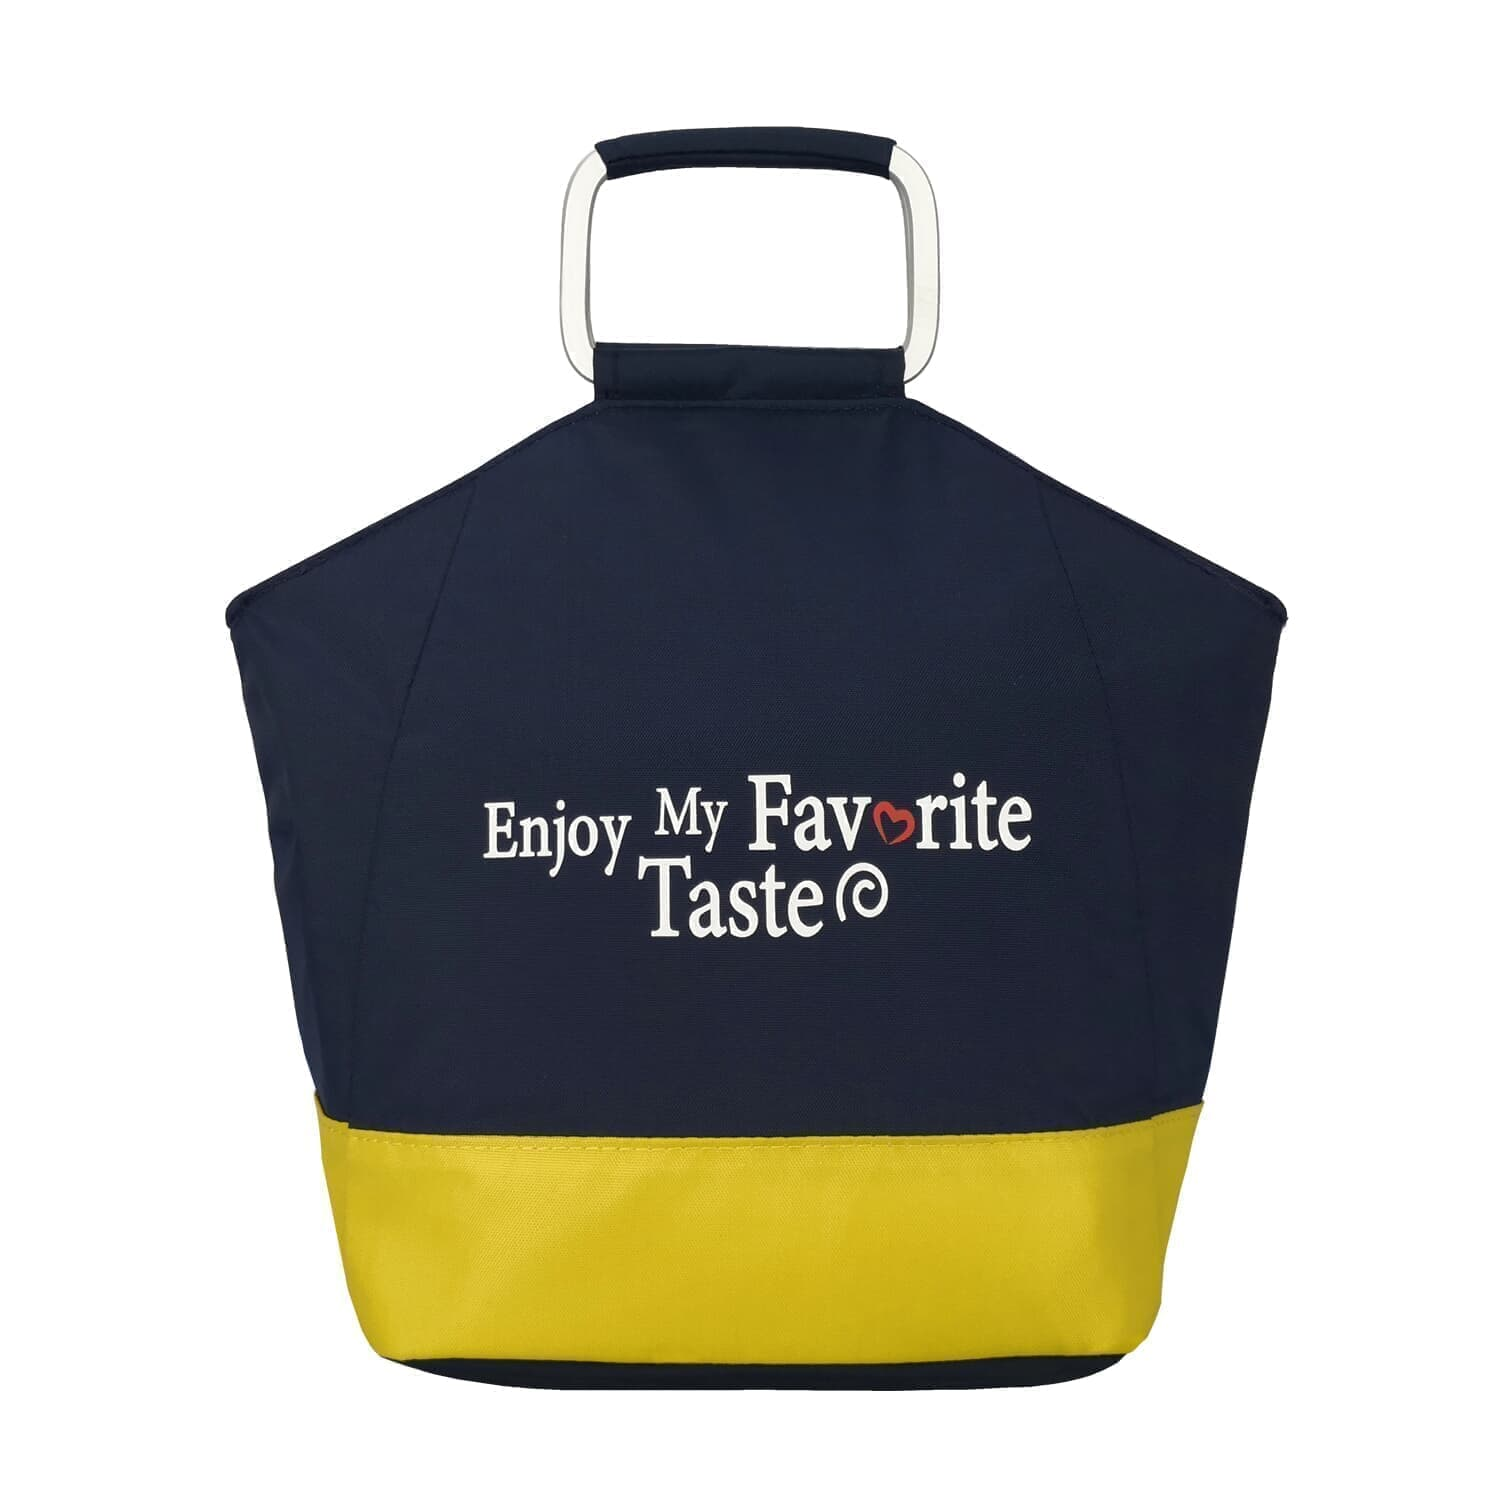 Homfu Lunch Bag Tote Bag Lunch Box Women & Men Insulated Lunch Container for Work Office School Picnic